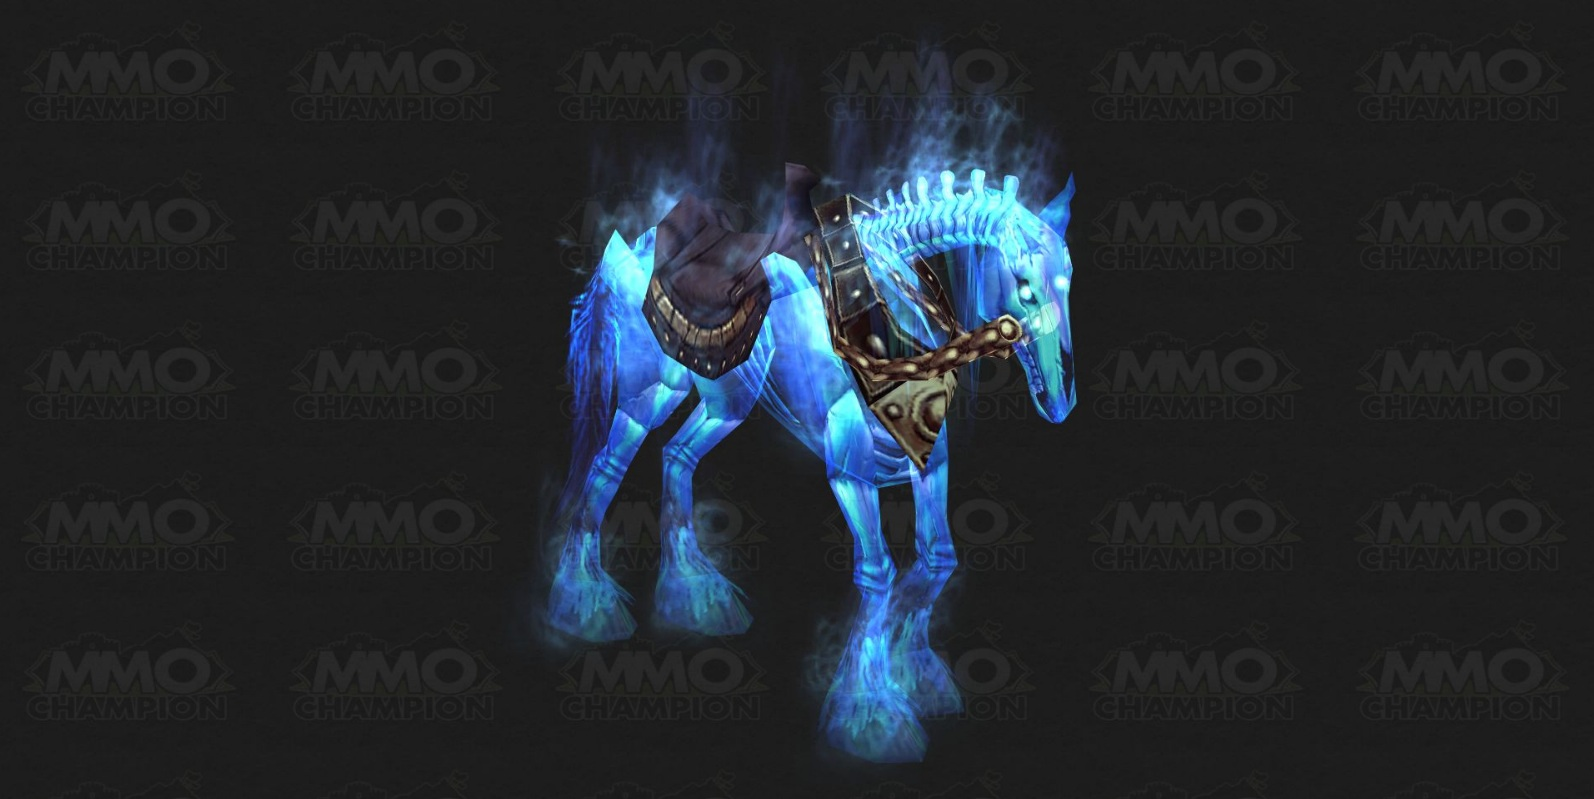 Ghastly Charger´s Skull - The skull is ephemeral horse